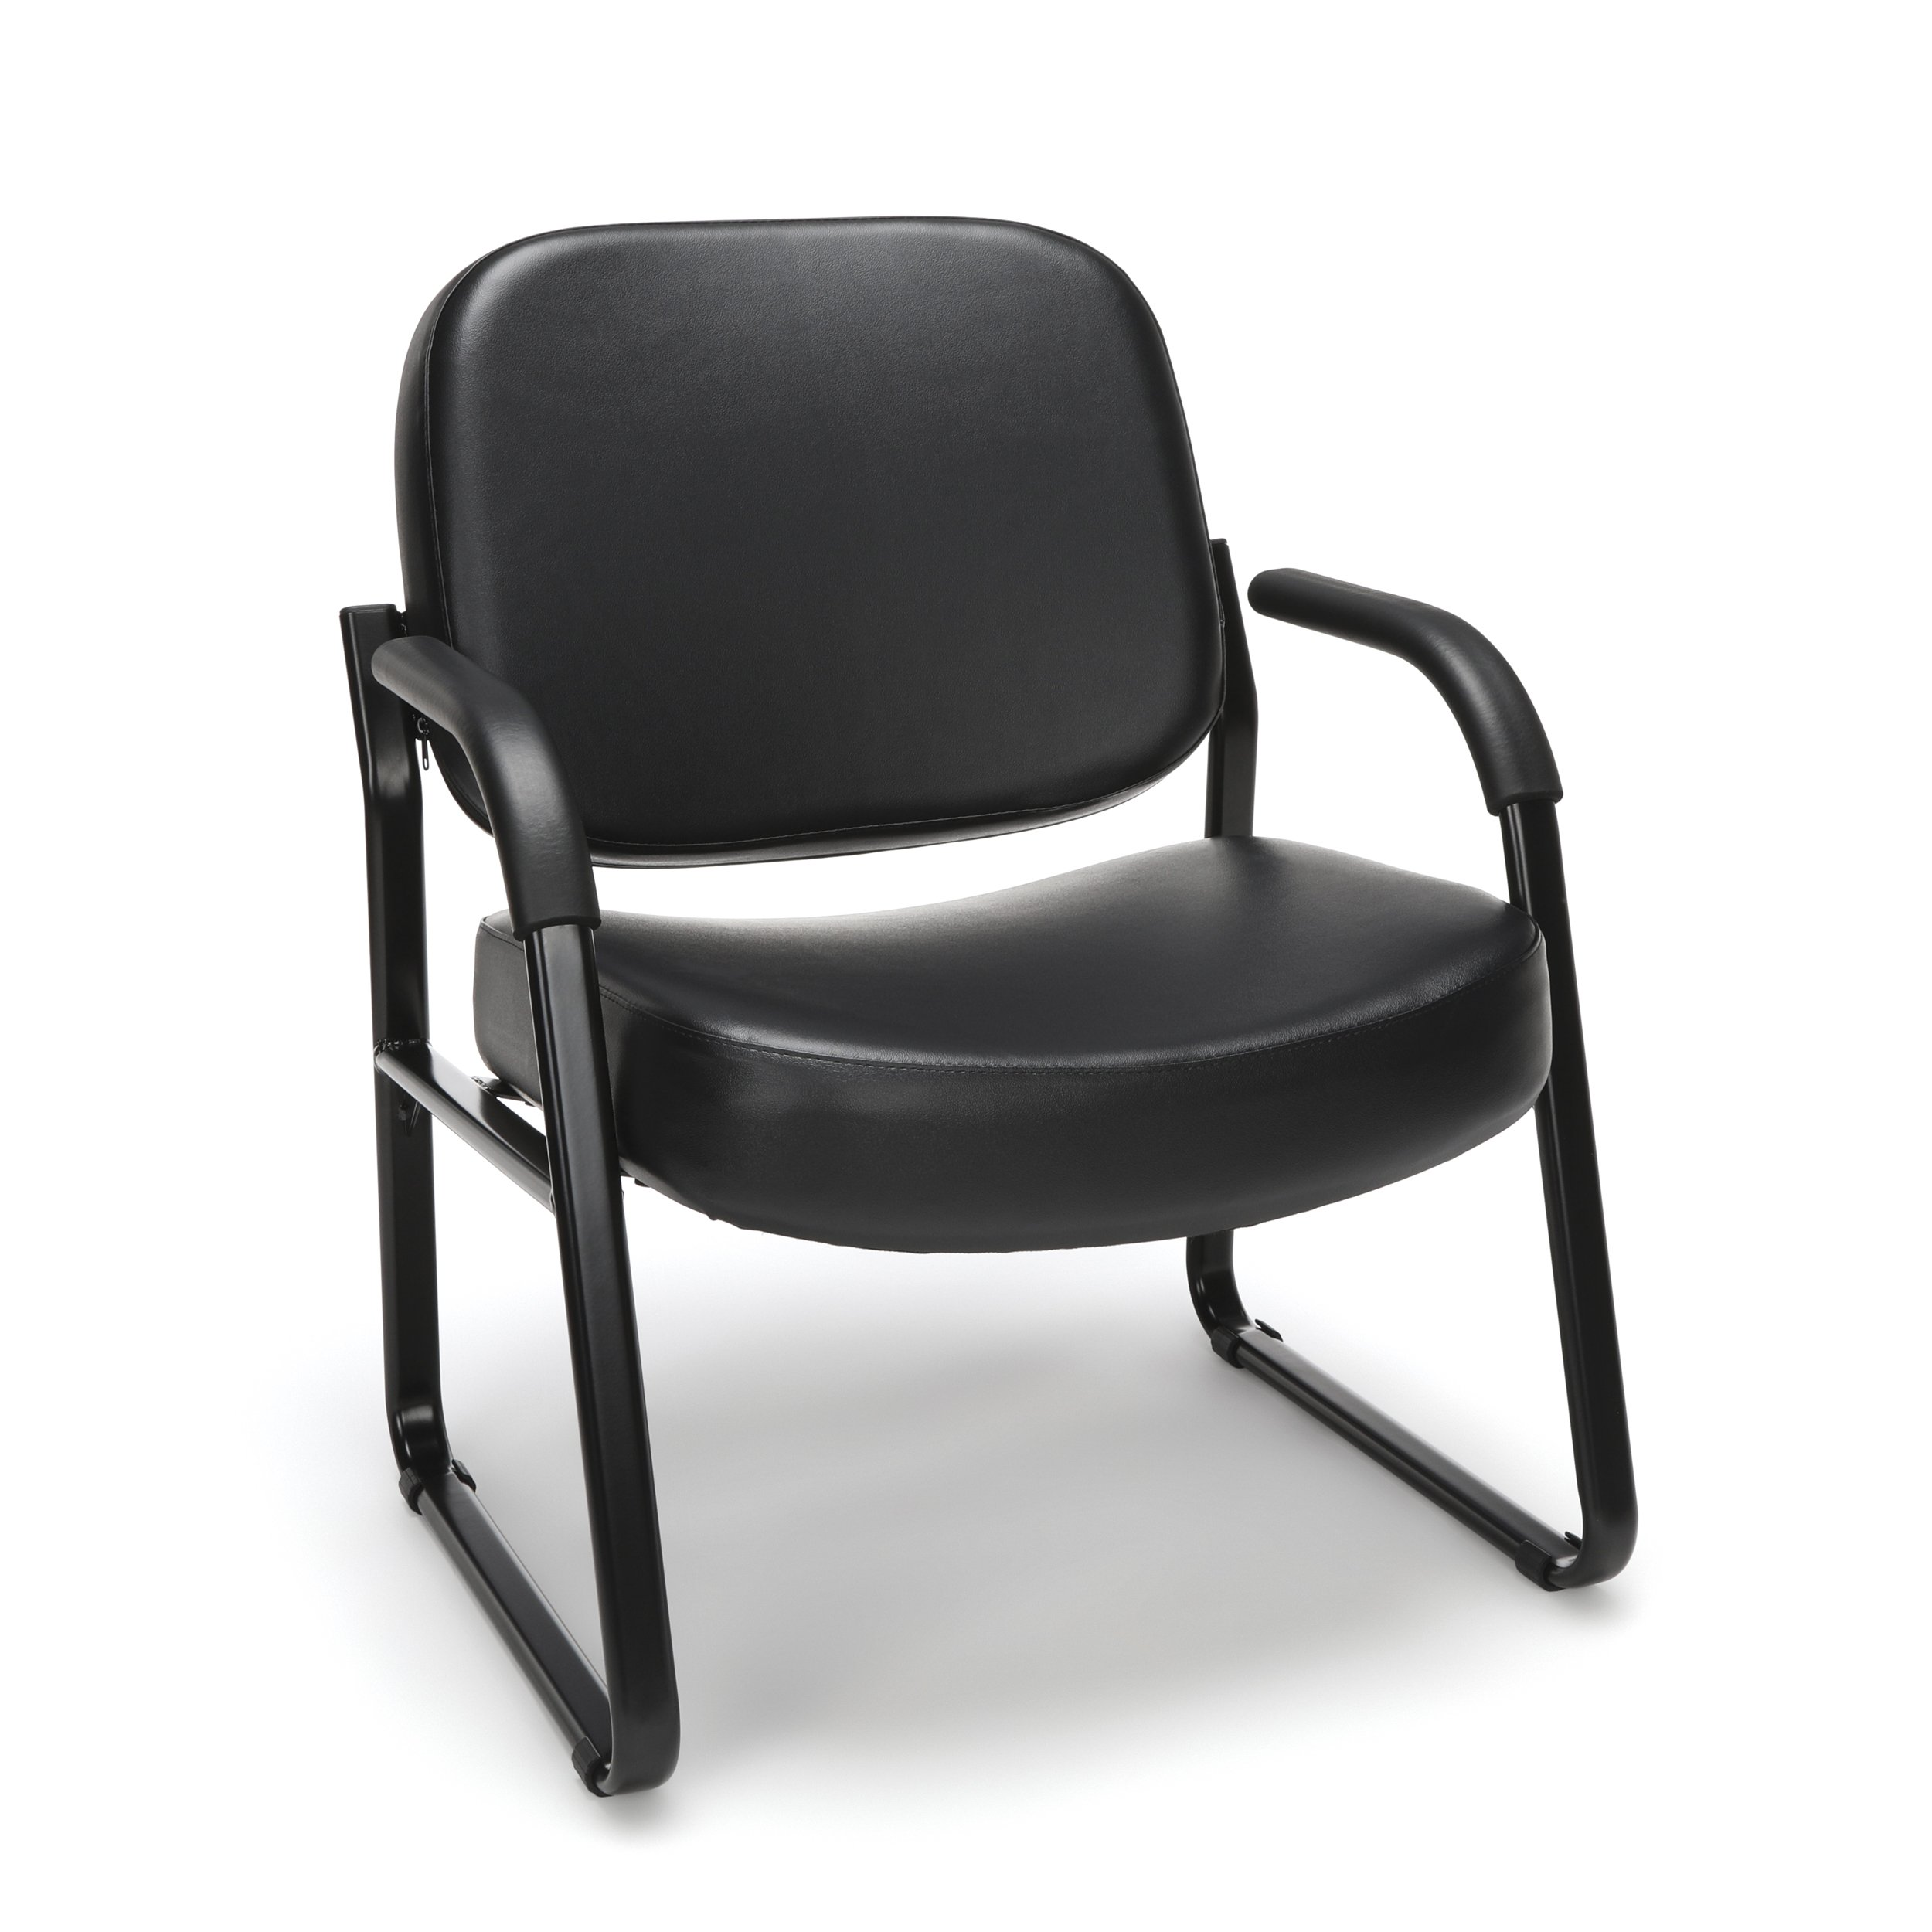 OFM Big and Tall Reception Chair with Arms - Anti-Microbial/Anti-Bacterial Vinyl Mid-Back Guest Chair, Black by OFM